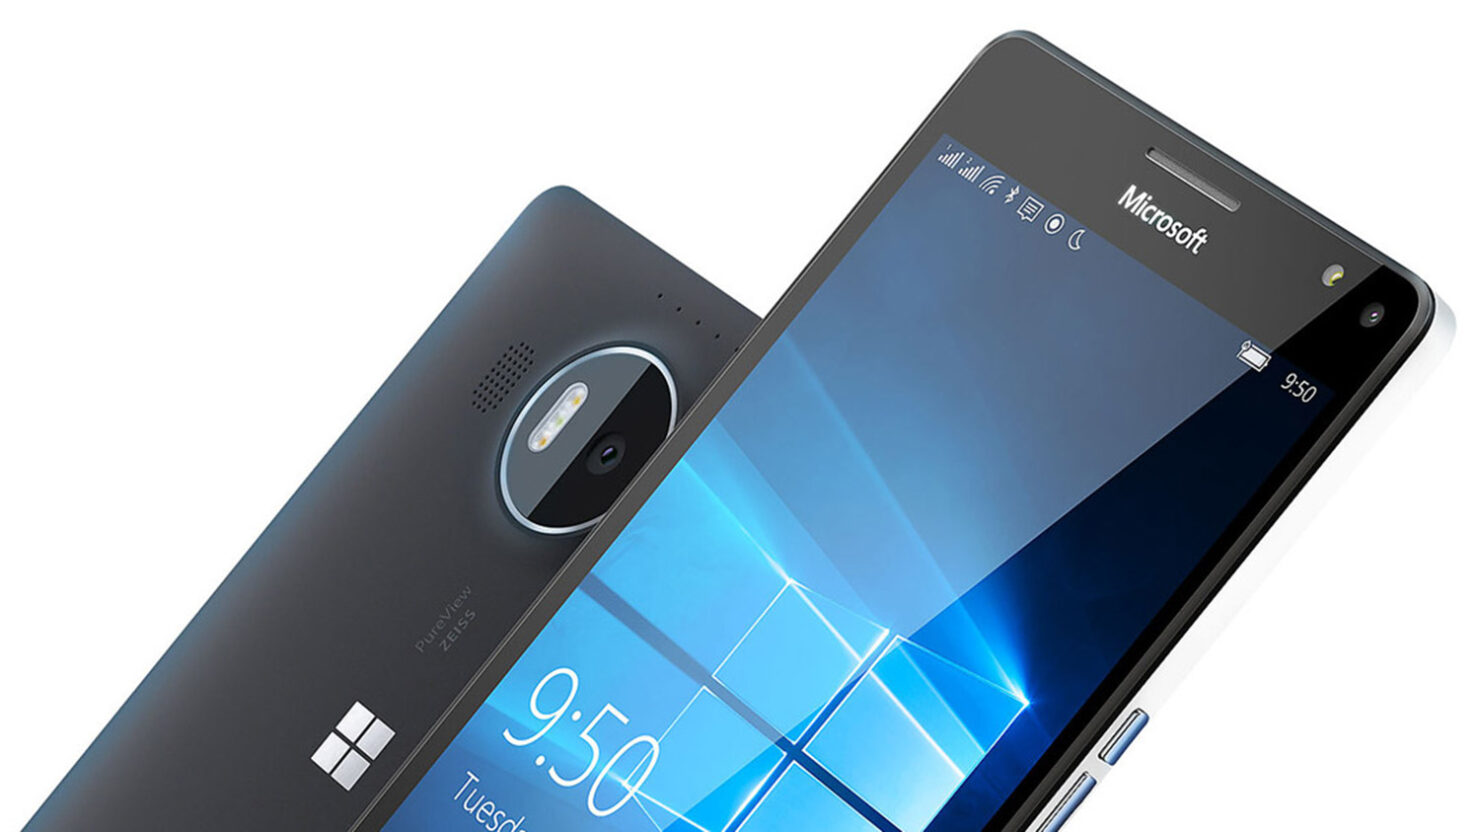 Windows Phone Revival Not Happening After Surface Duo, Says Microsoft